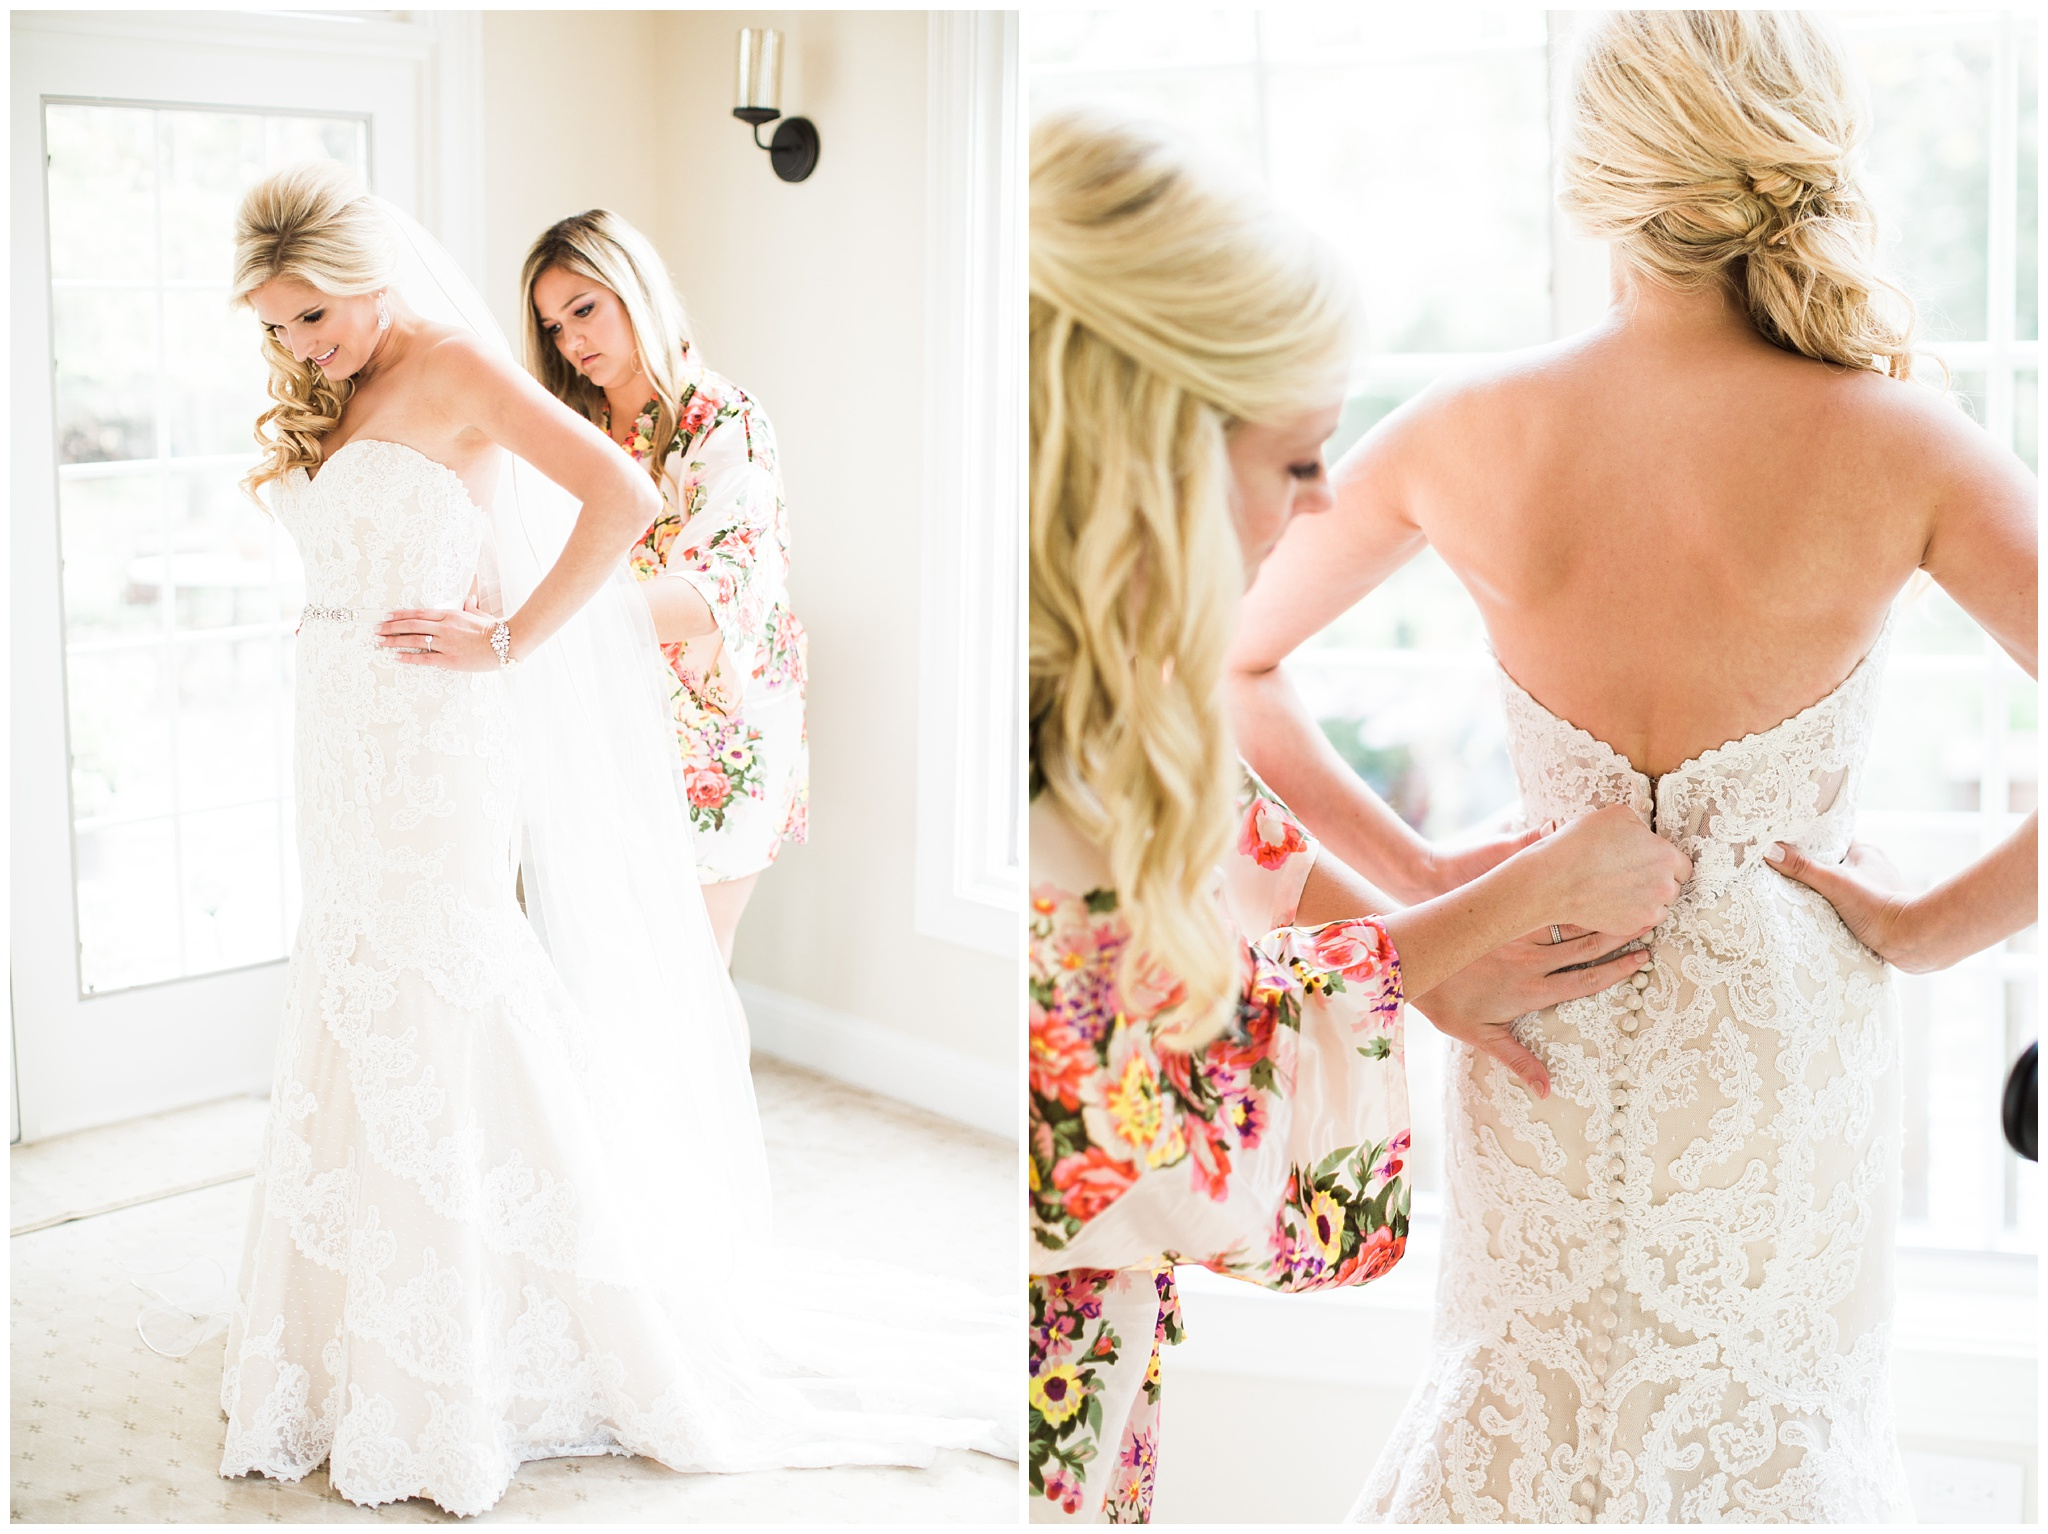 RebeccaHaleyPhotography_BarringtonPhotographer_ChicagoPhotographer_ChicagoWedding_0011.jpg